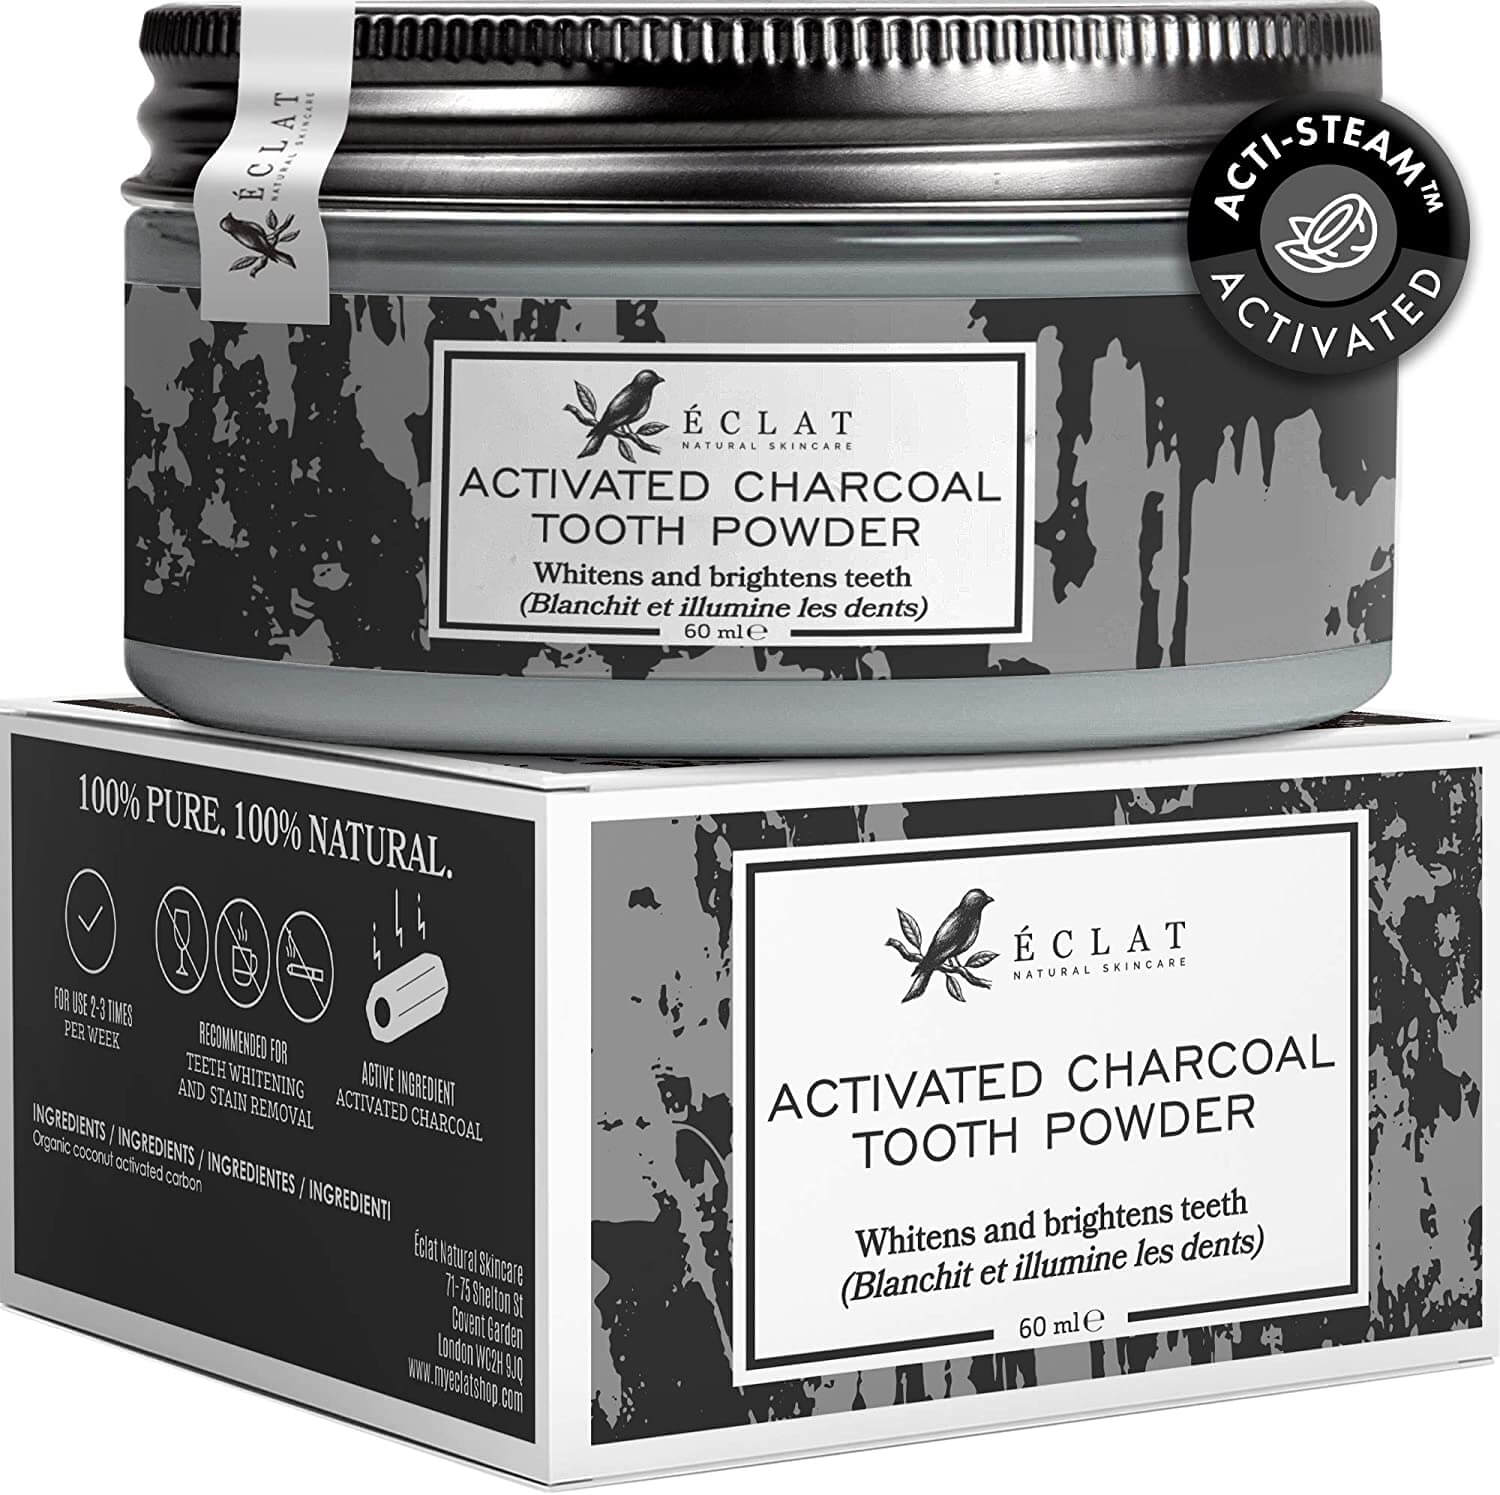 eclat activated charcoal tooth powder